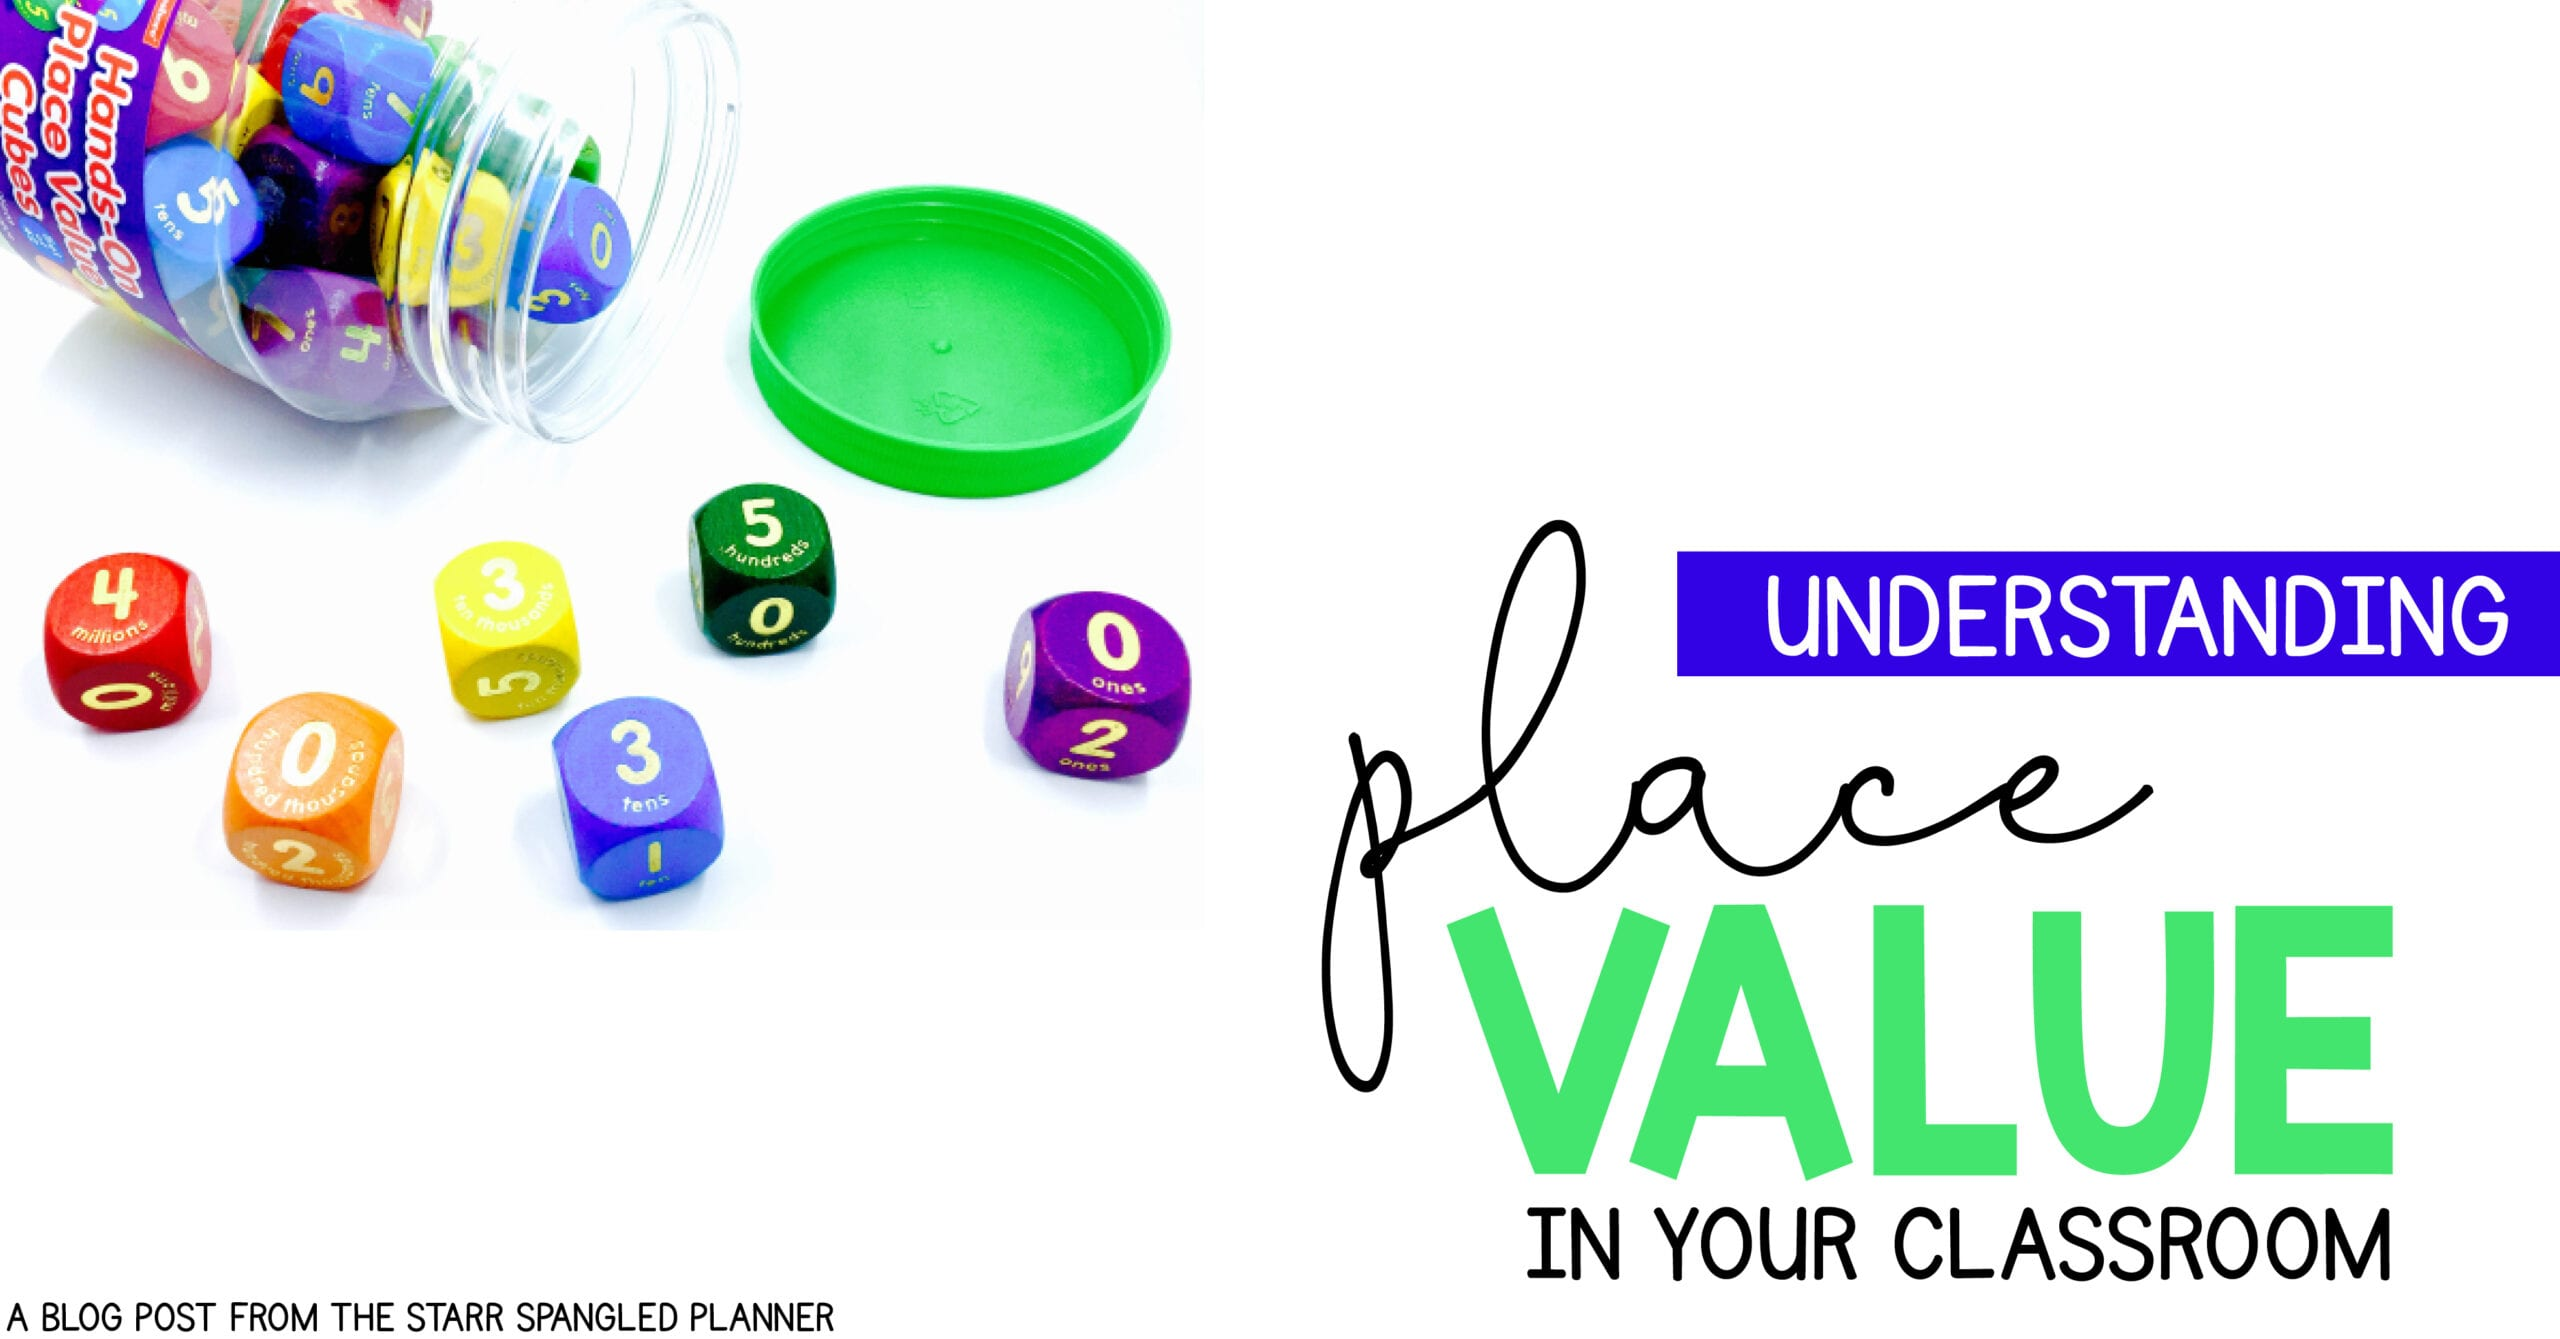 photograph about Place Value Games Printable identify Education Point Great importance - Coaching with Jillian Starr